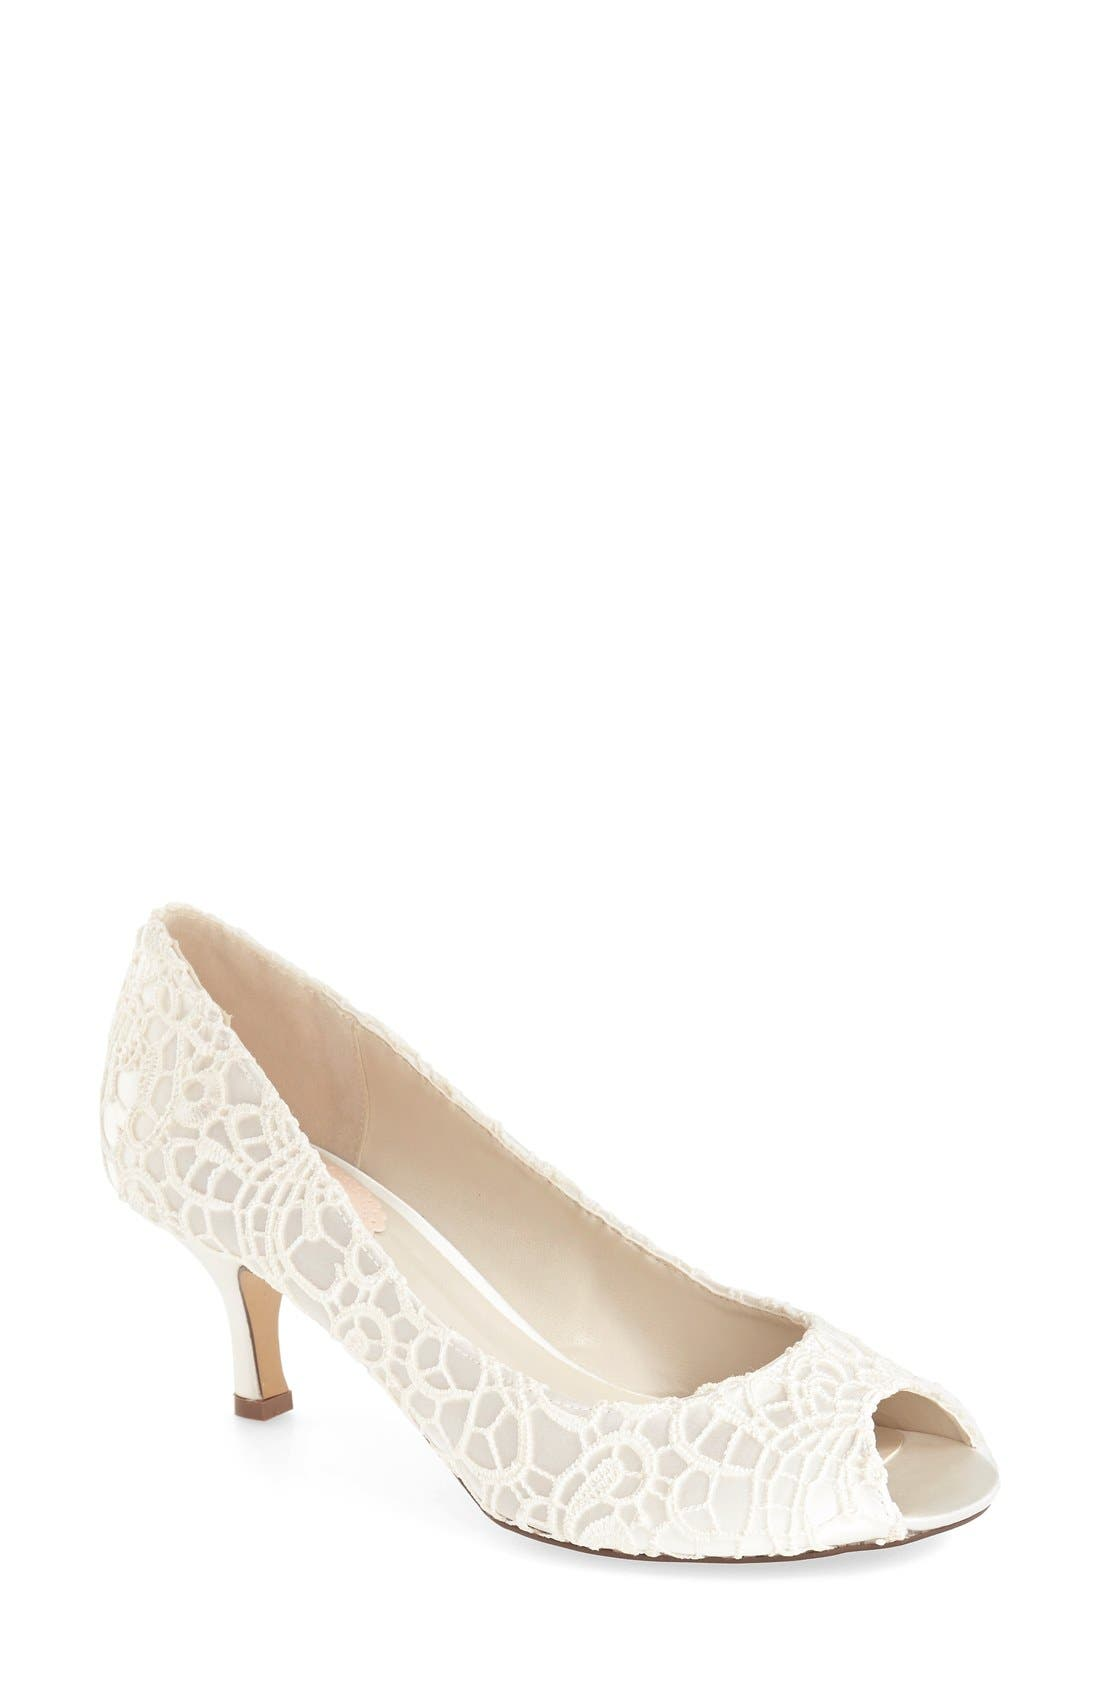 'Emotion' Peep Toe Pump,                             Main thumbnail 1, color,                             IVORY